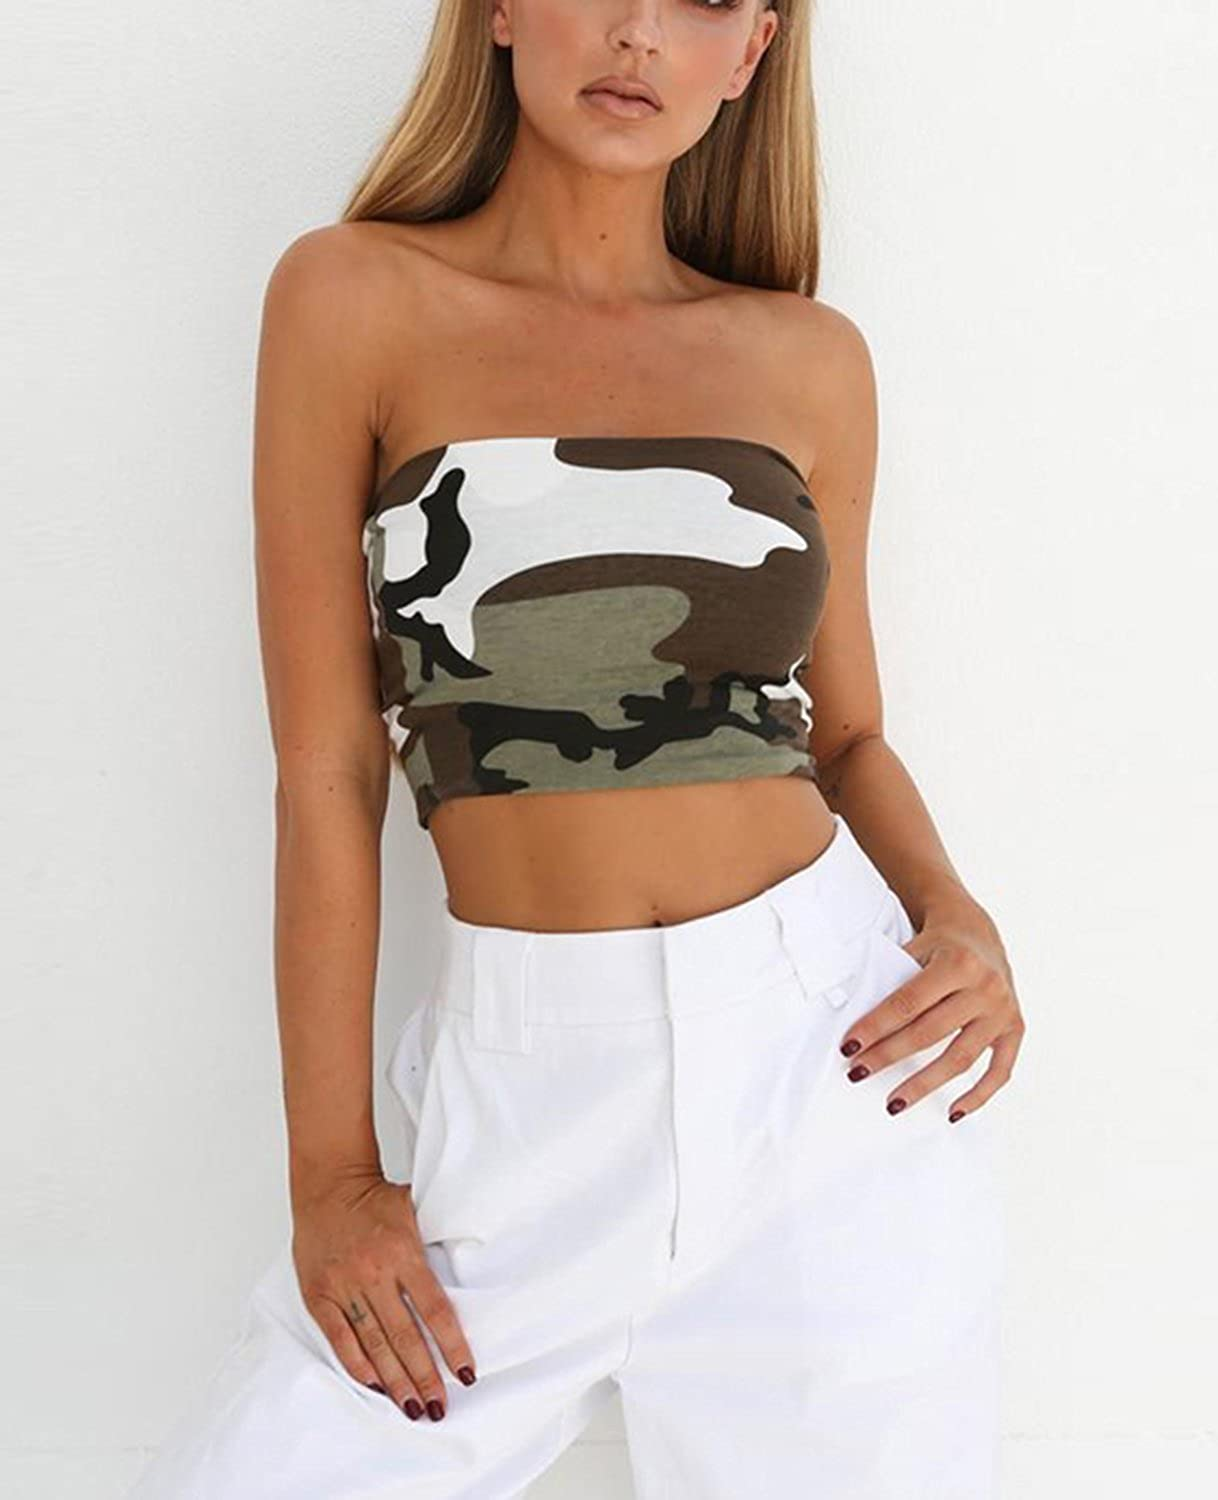 ebde3d64b6c WIFORNT Women Camouflage Strapless Bandeau Tube Crop Tops Bra Sexy Breast  Wrap Cami Tops at Amazon Women s Clothing store